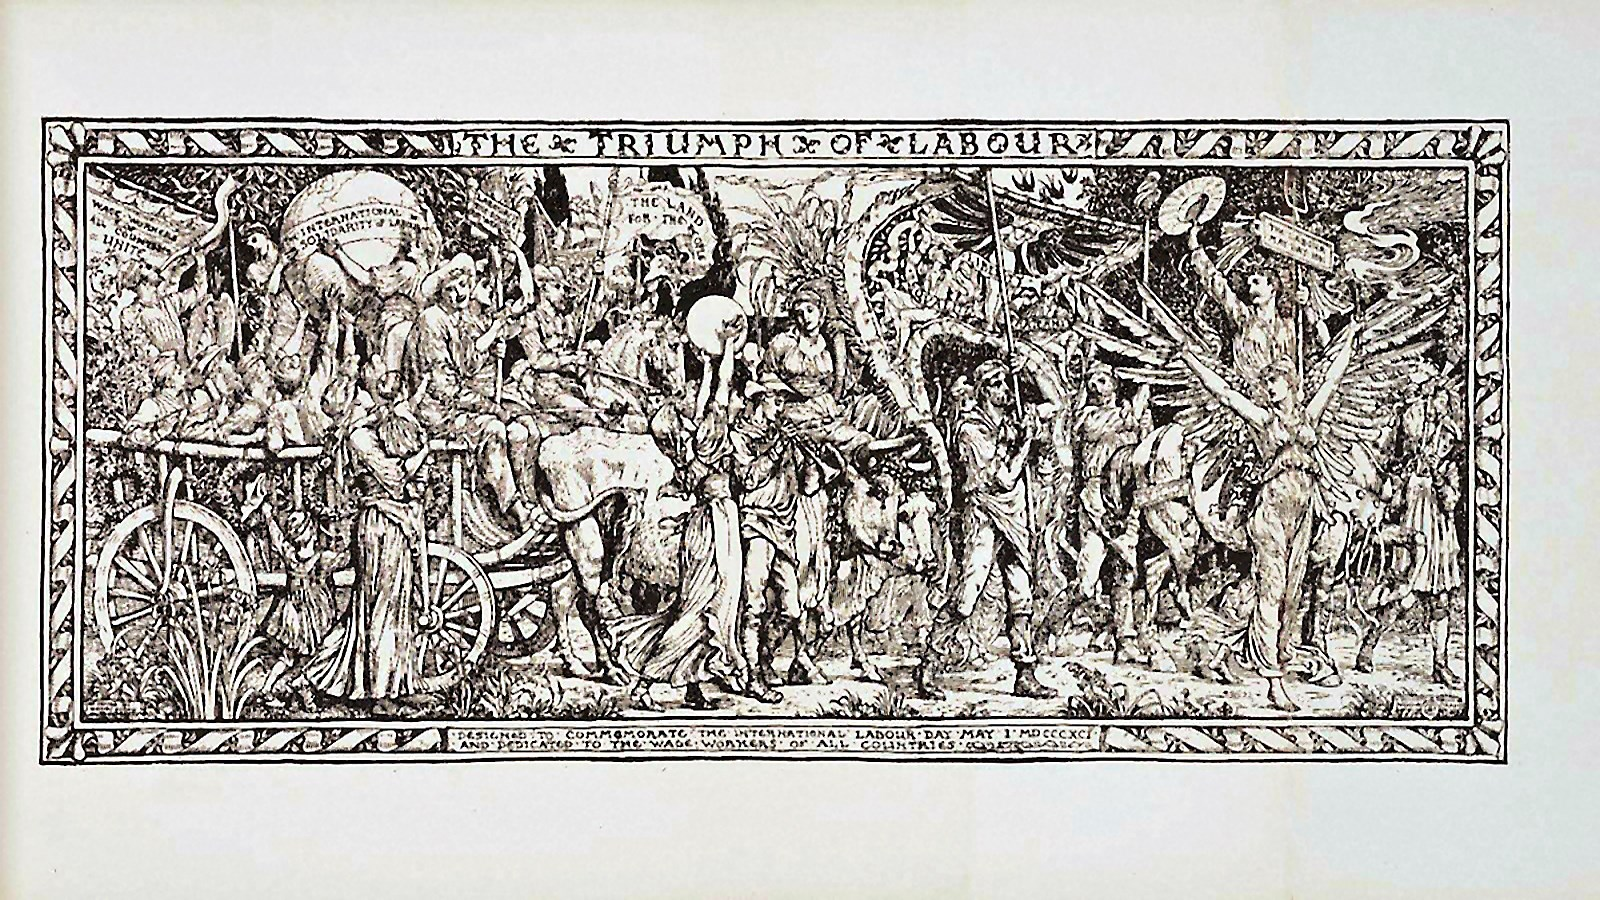 00 Walter Crane. The Triumph of Labour. Dedicated to the Wage-Workers of All Countries. 1895